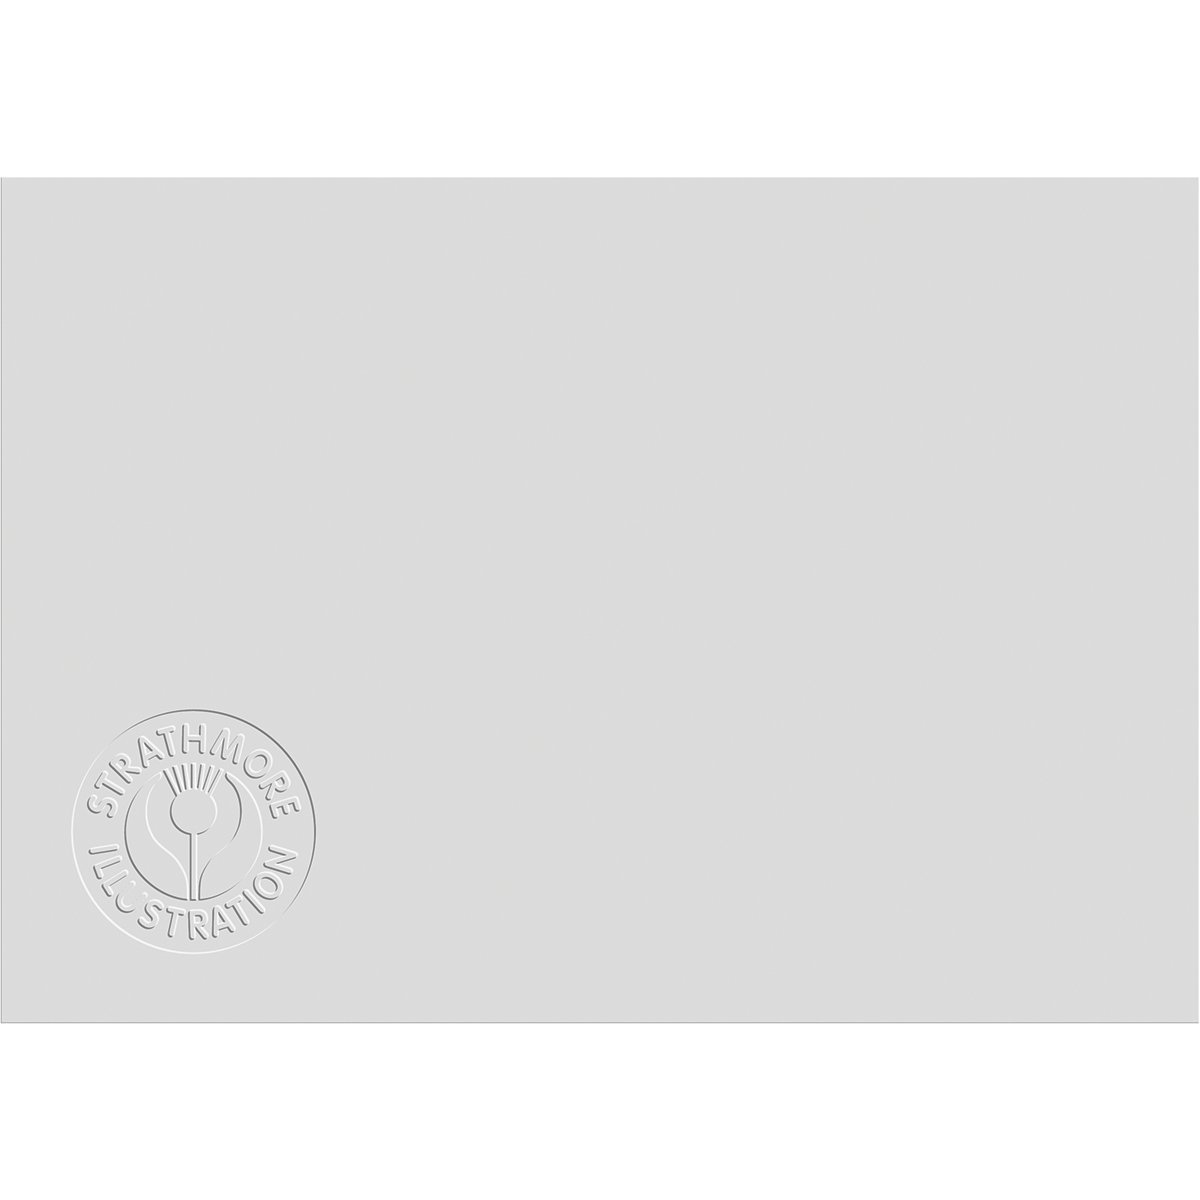 Strathmore 500 Series Illustration Board, Lightweight Vellum Surface 15 Sheets (240-13) by Strathmore